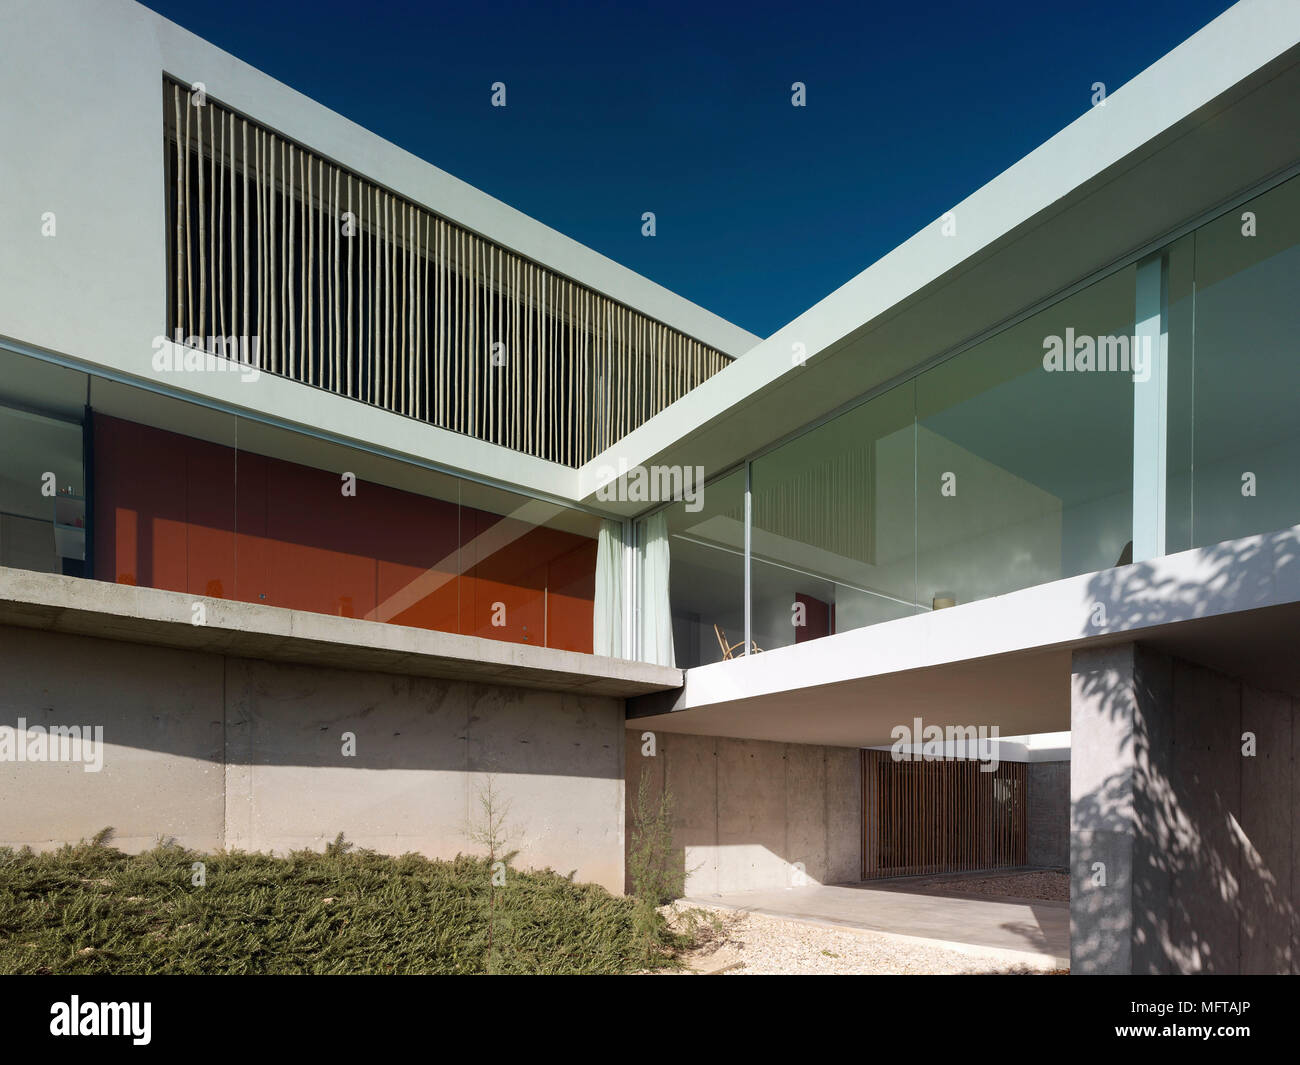 Modern Painted House Stockfotos & Modern Painted House Bilder - Alamy